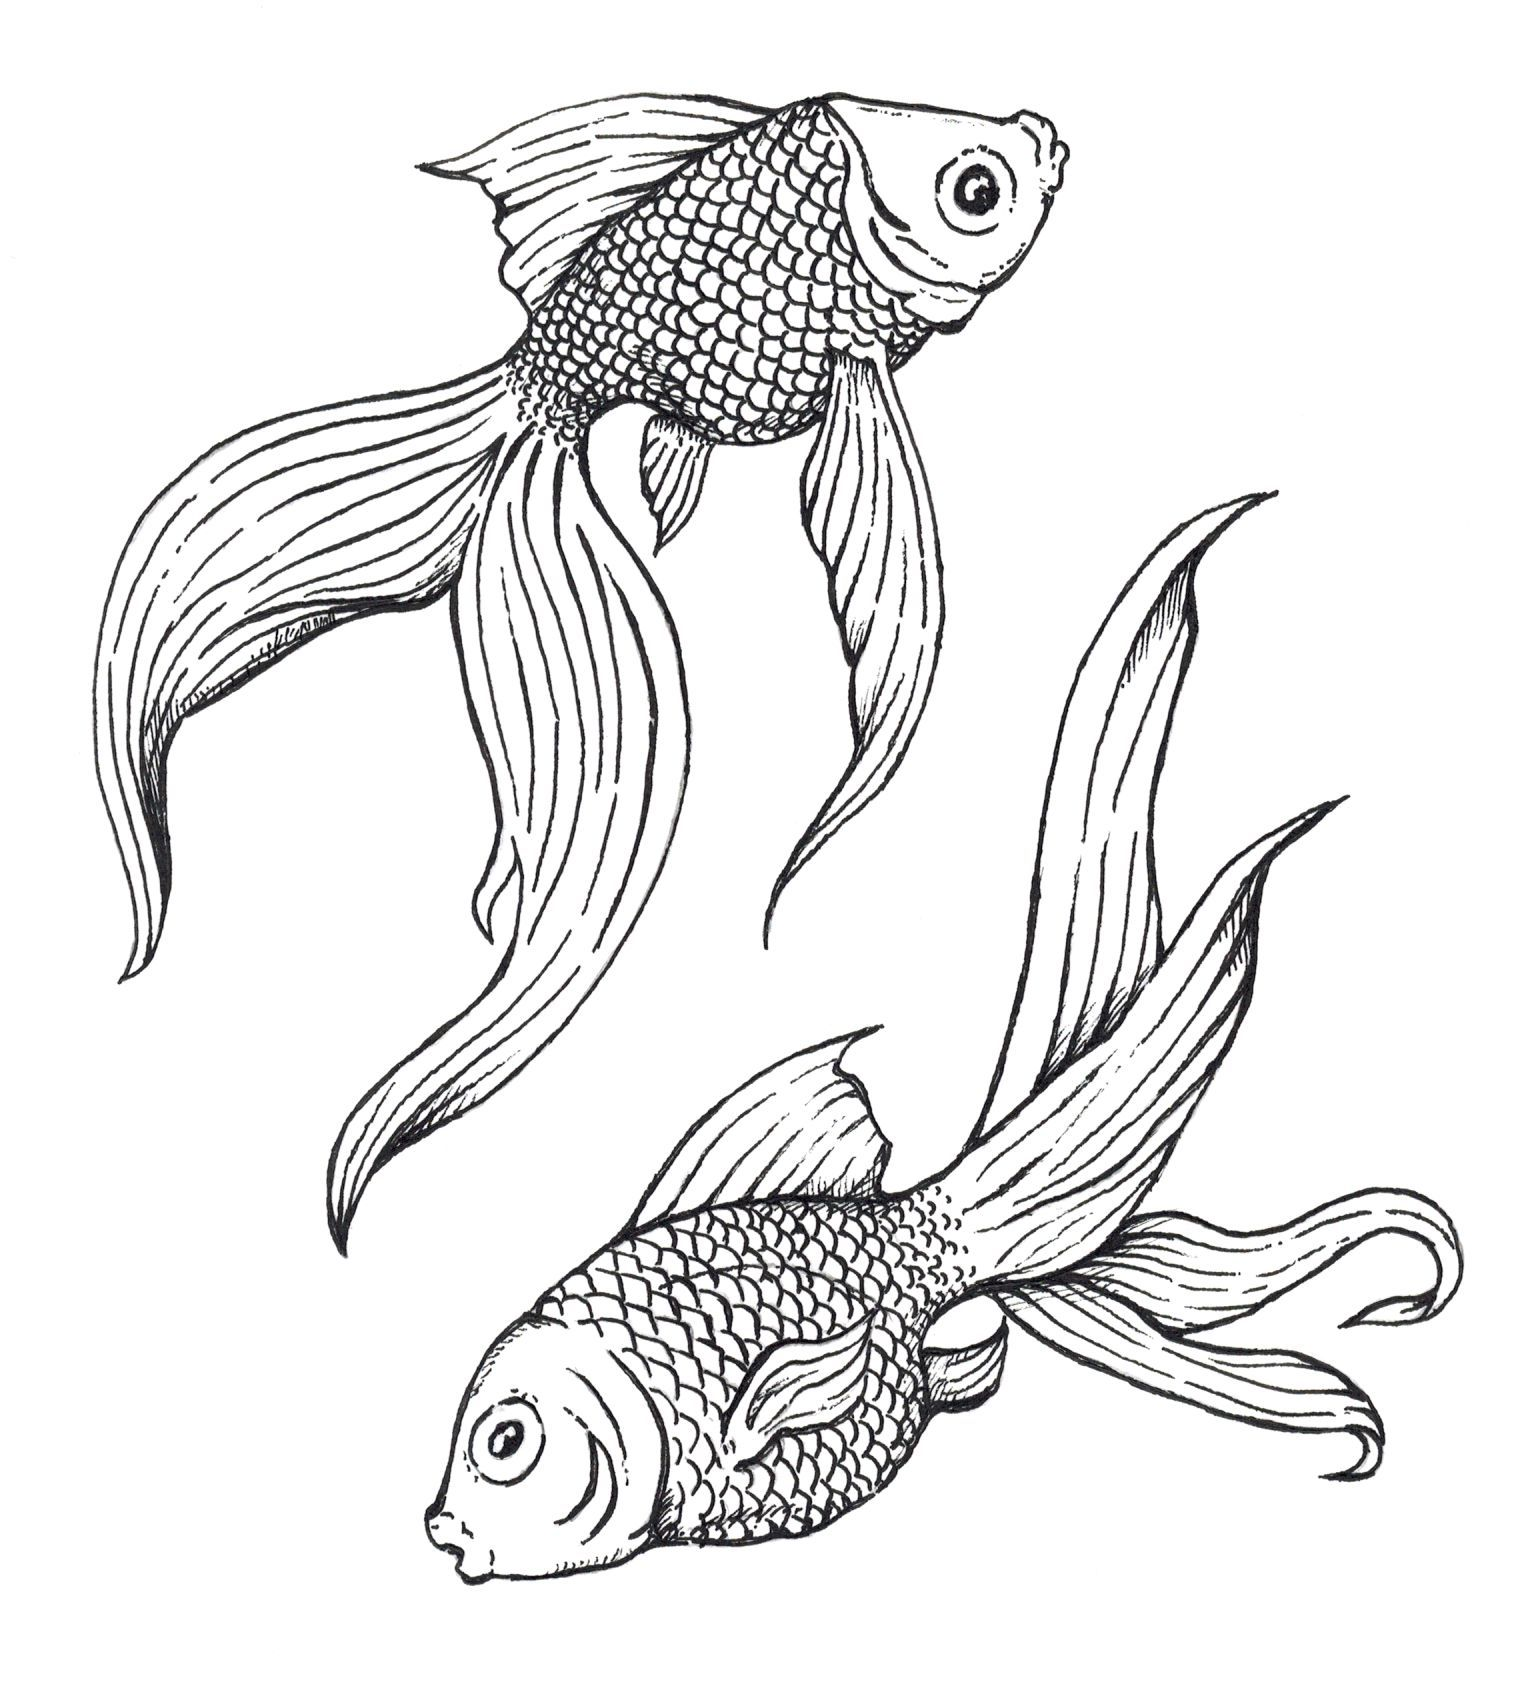 Gold Fish - Pen & Ink by Wendell Cisco II | Artwork by Wendell W ...